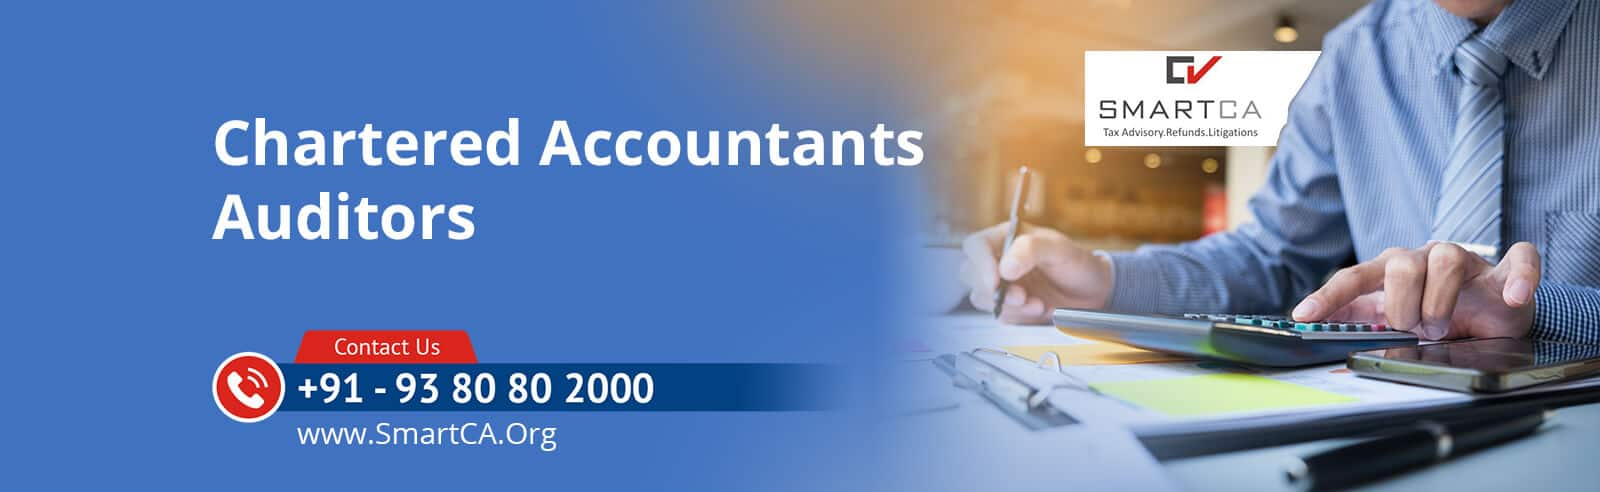 Auditors in Chennai George Town